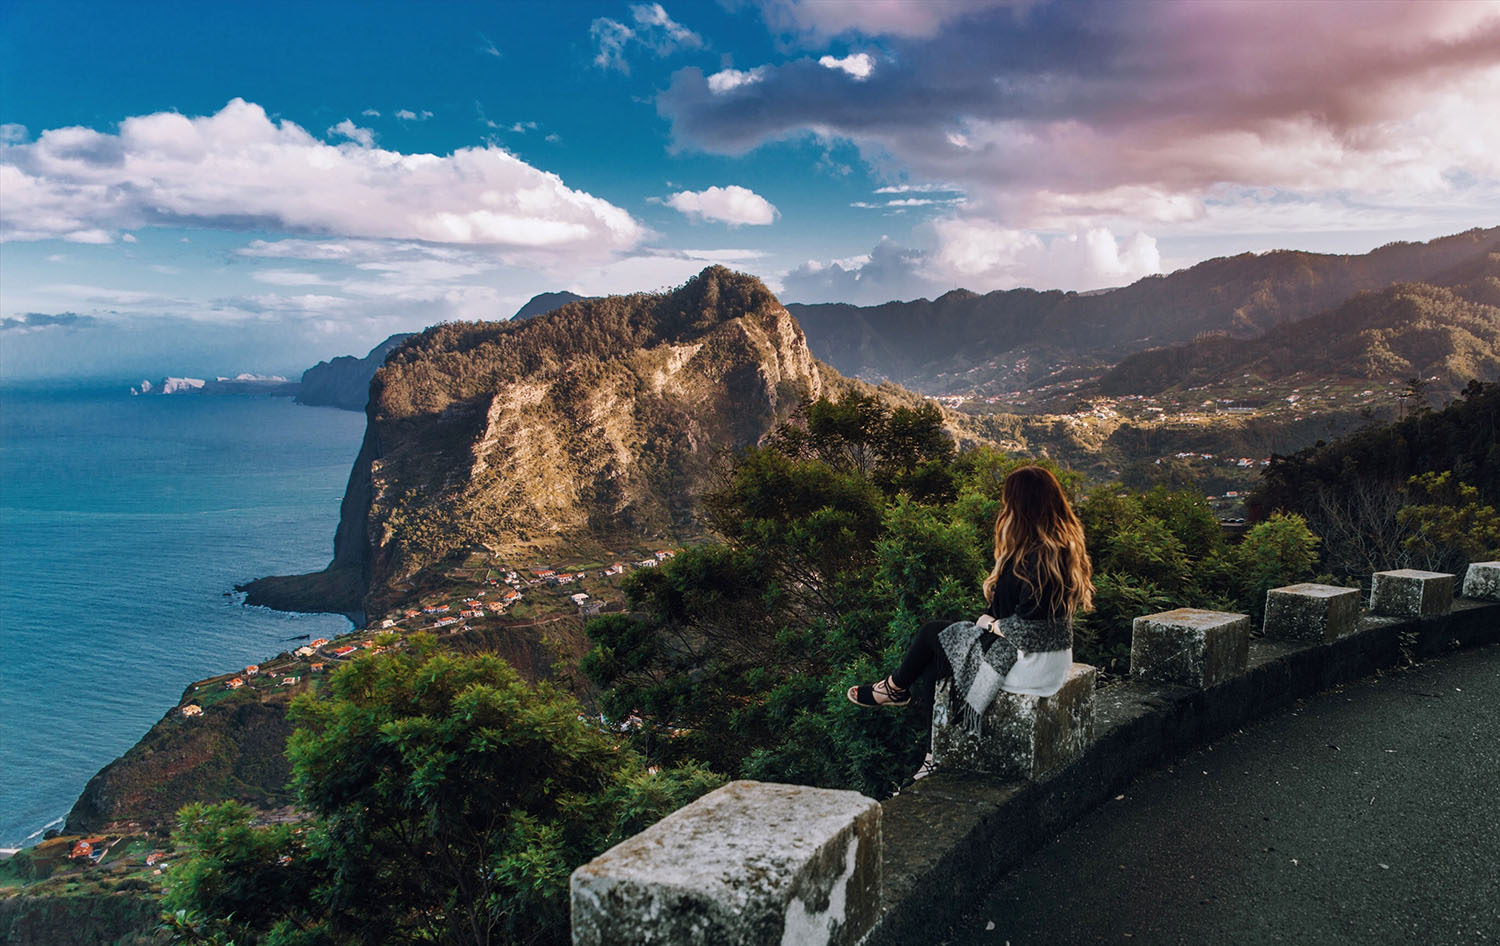 Woman sitting on edge looking out over Madeira's Beautiful Landscape